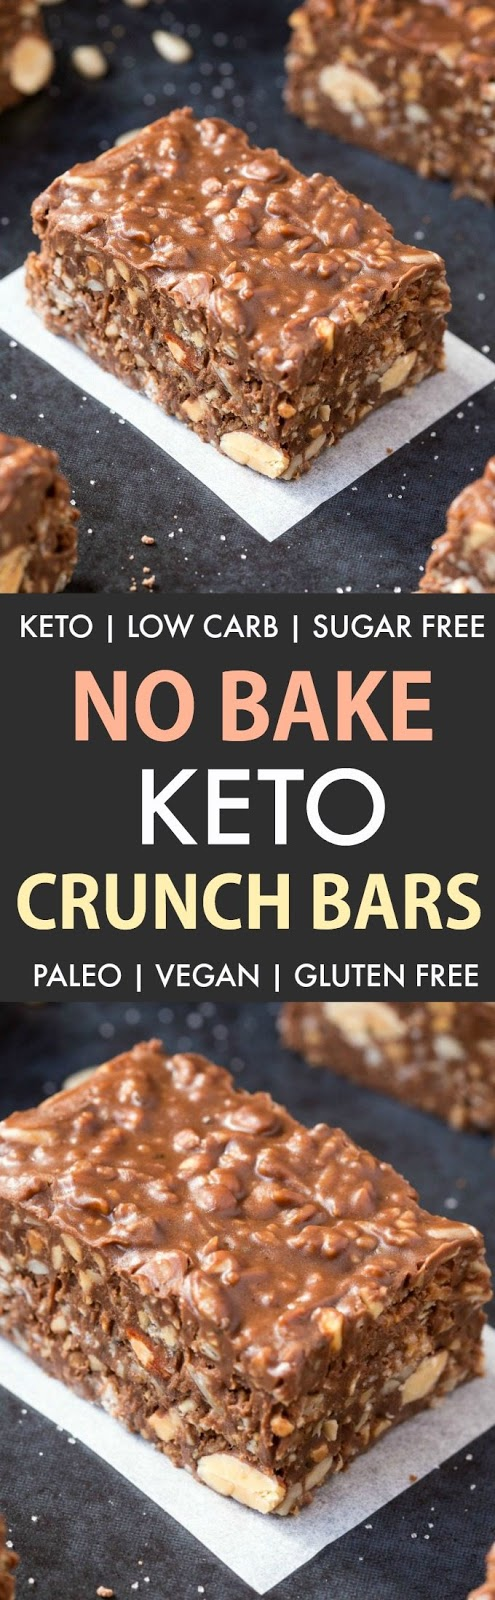 Homemade Keto Chocolate Crunch Bars (Paleo, Vegan, Low Carb)